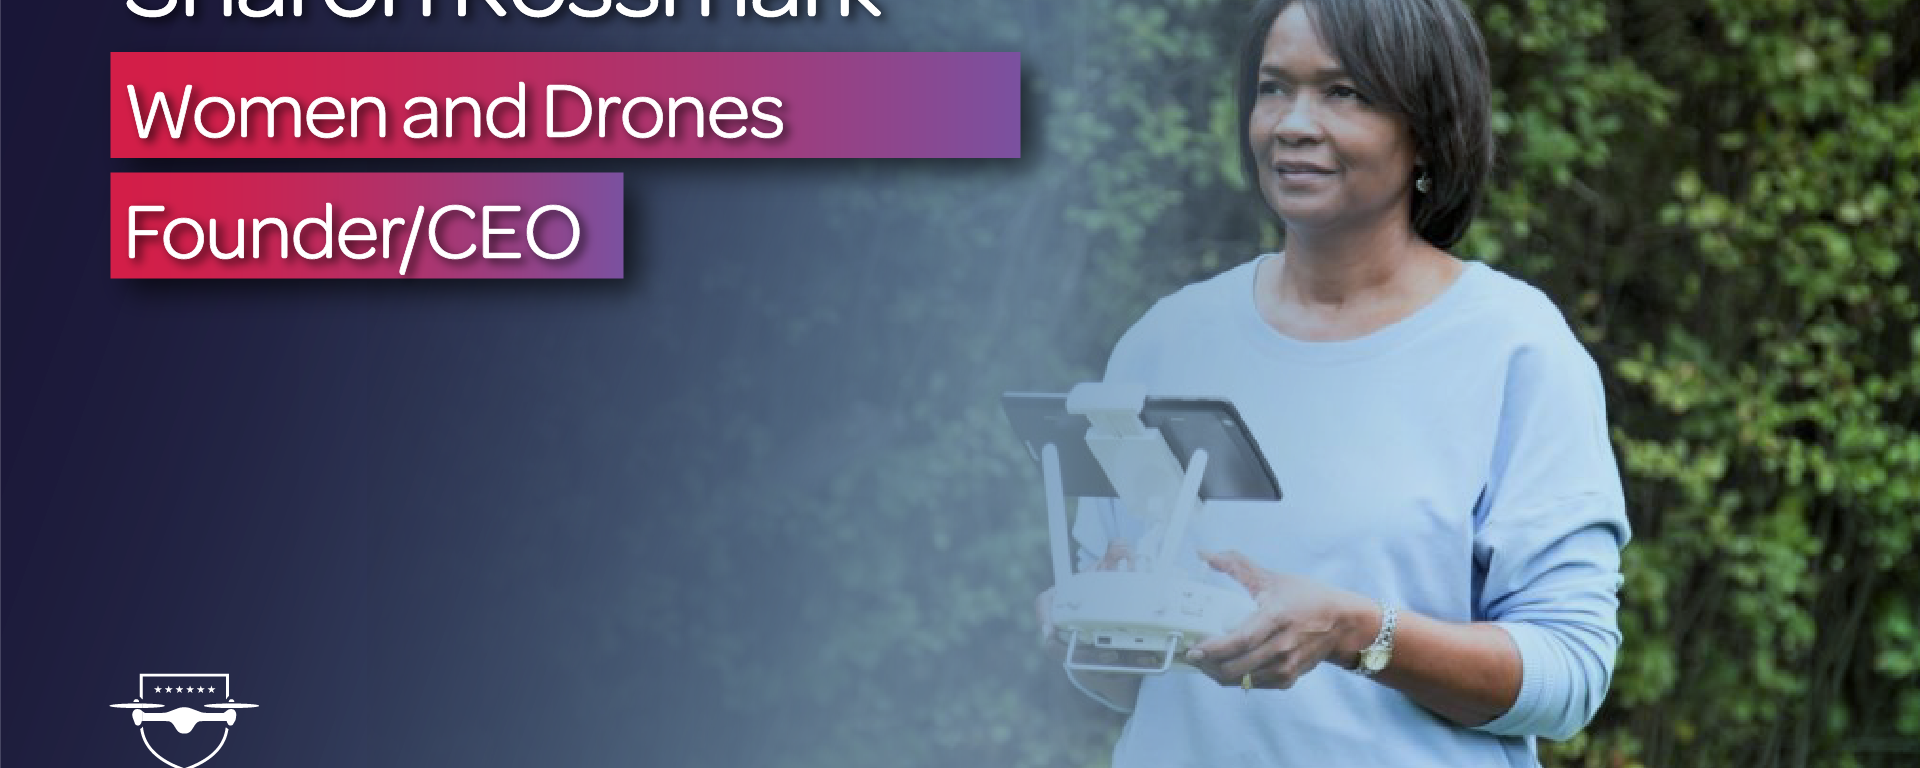 Drone Academy Podcast: Women and Drones